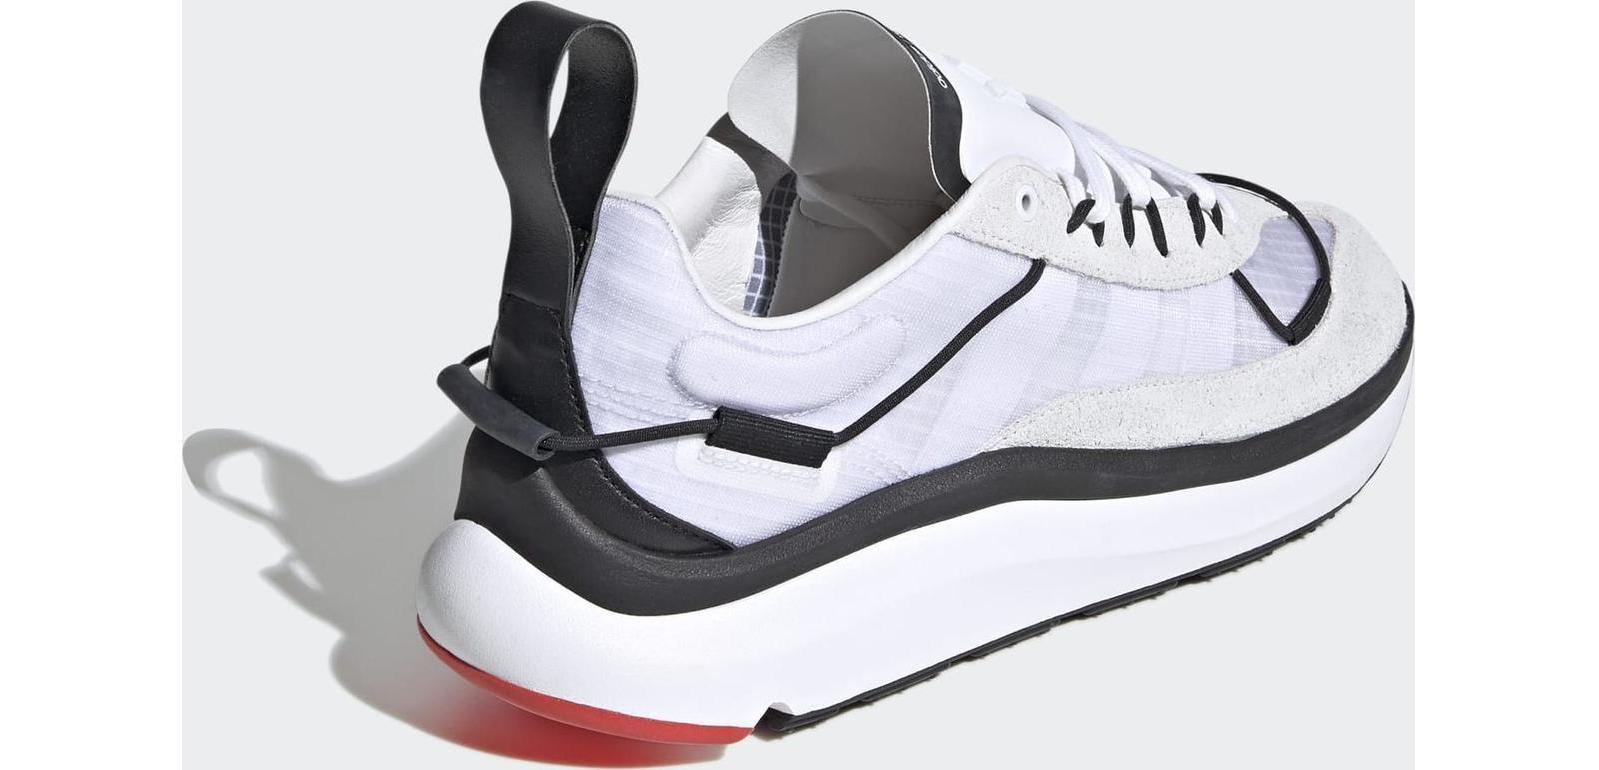 adidas Y-3 Shiku Core White / Black / Red